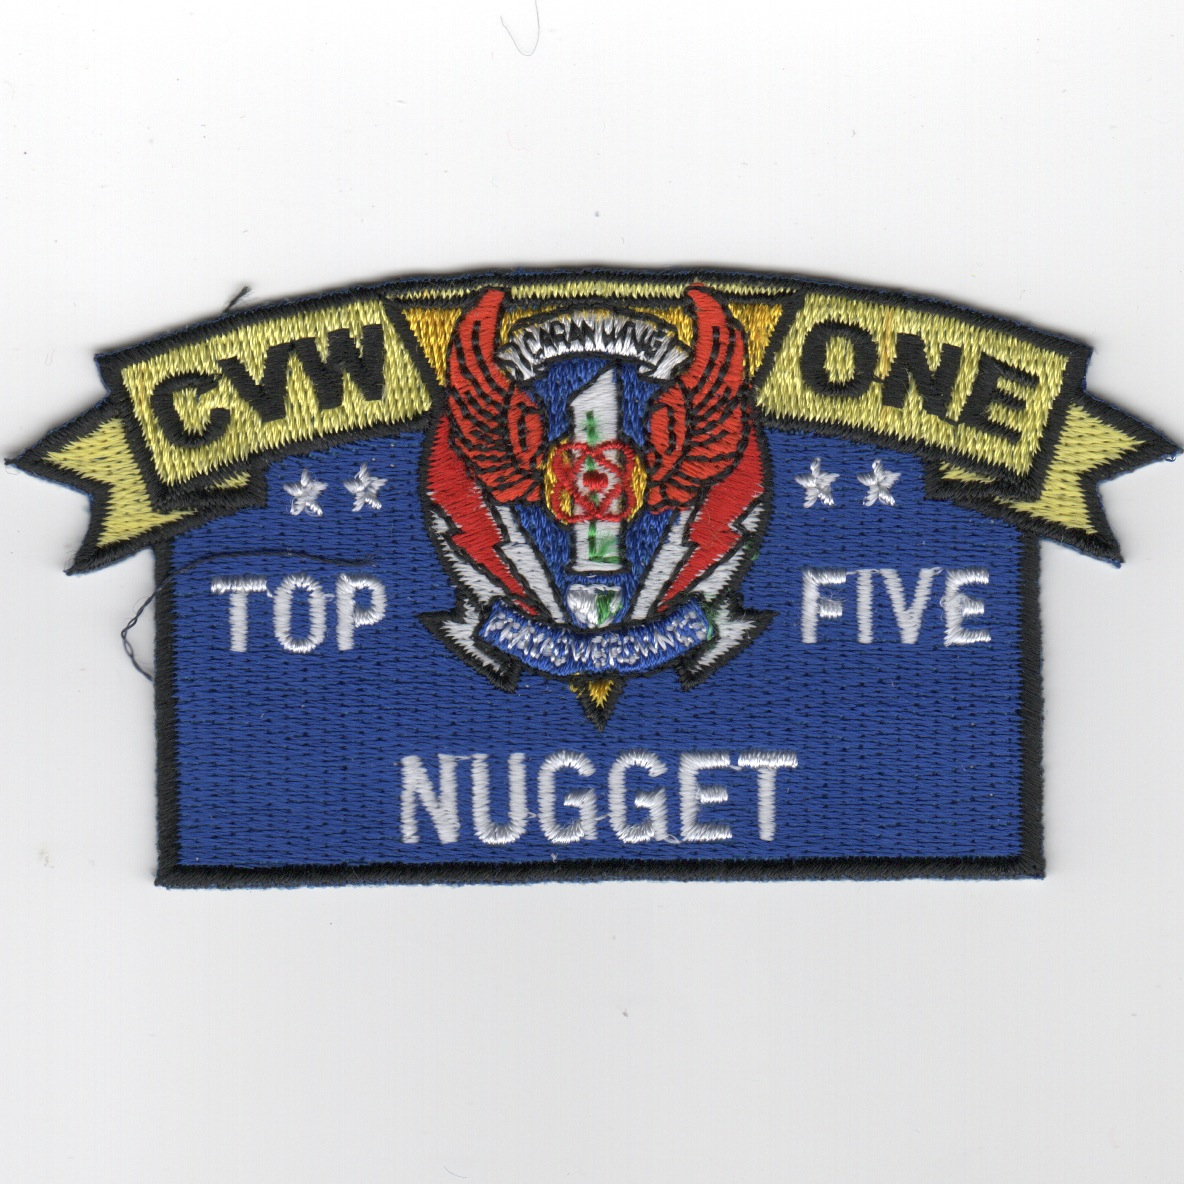 CVW-1 'TOP FIVE NUGGET' Award Patch